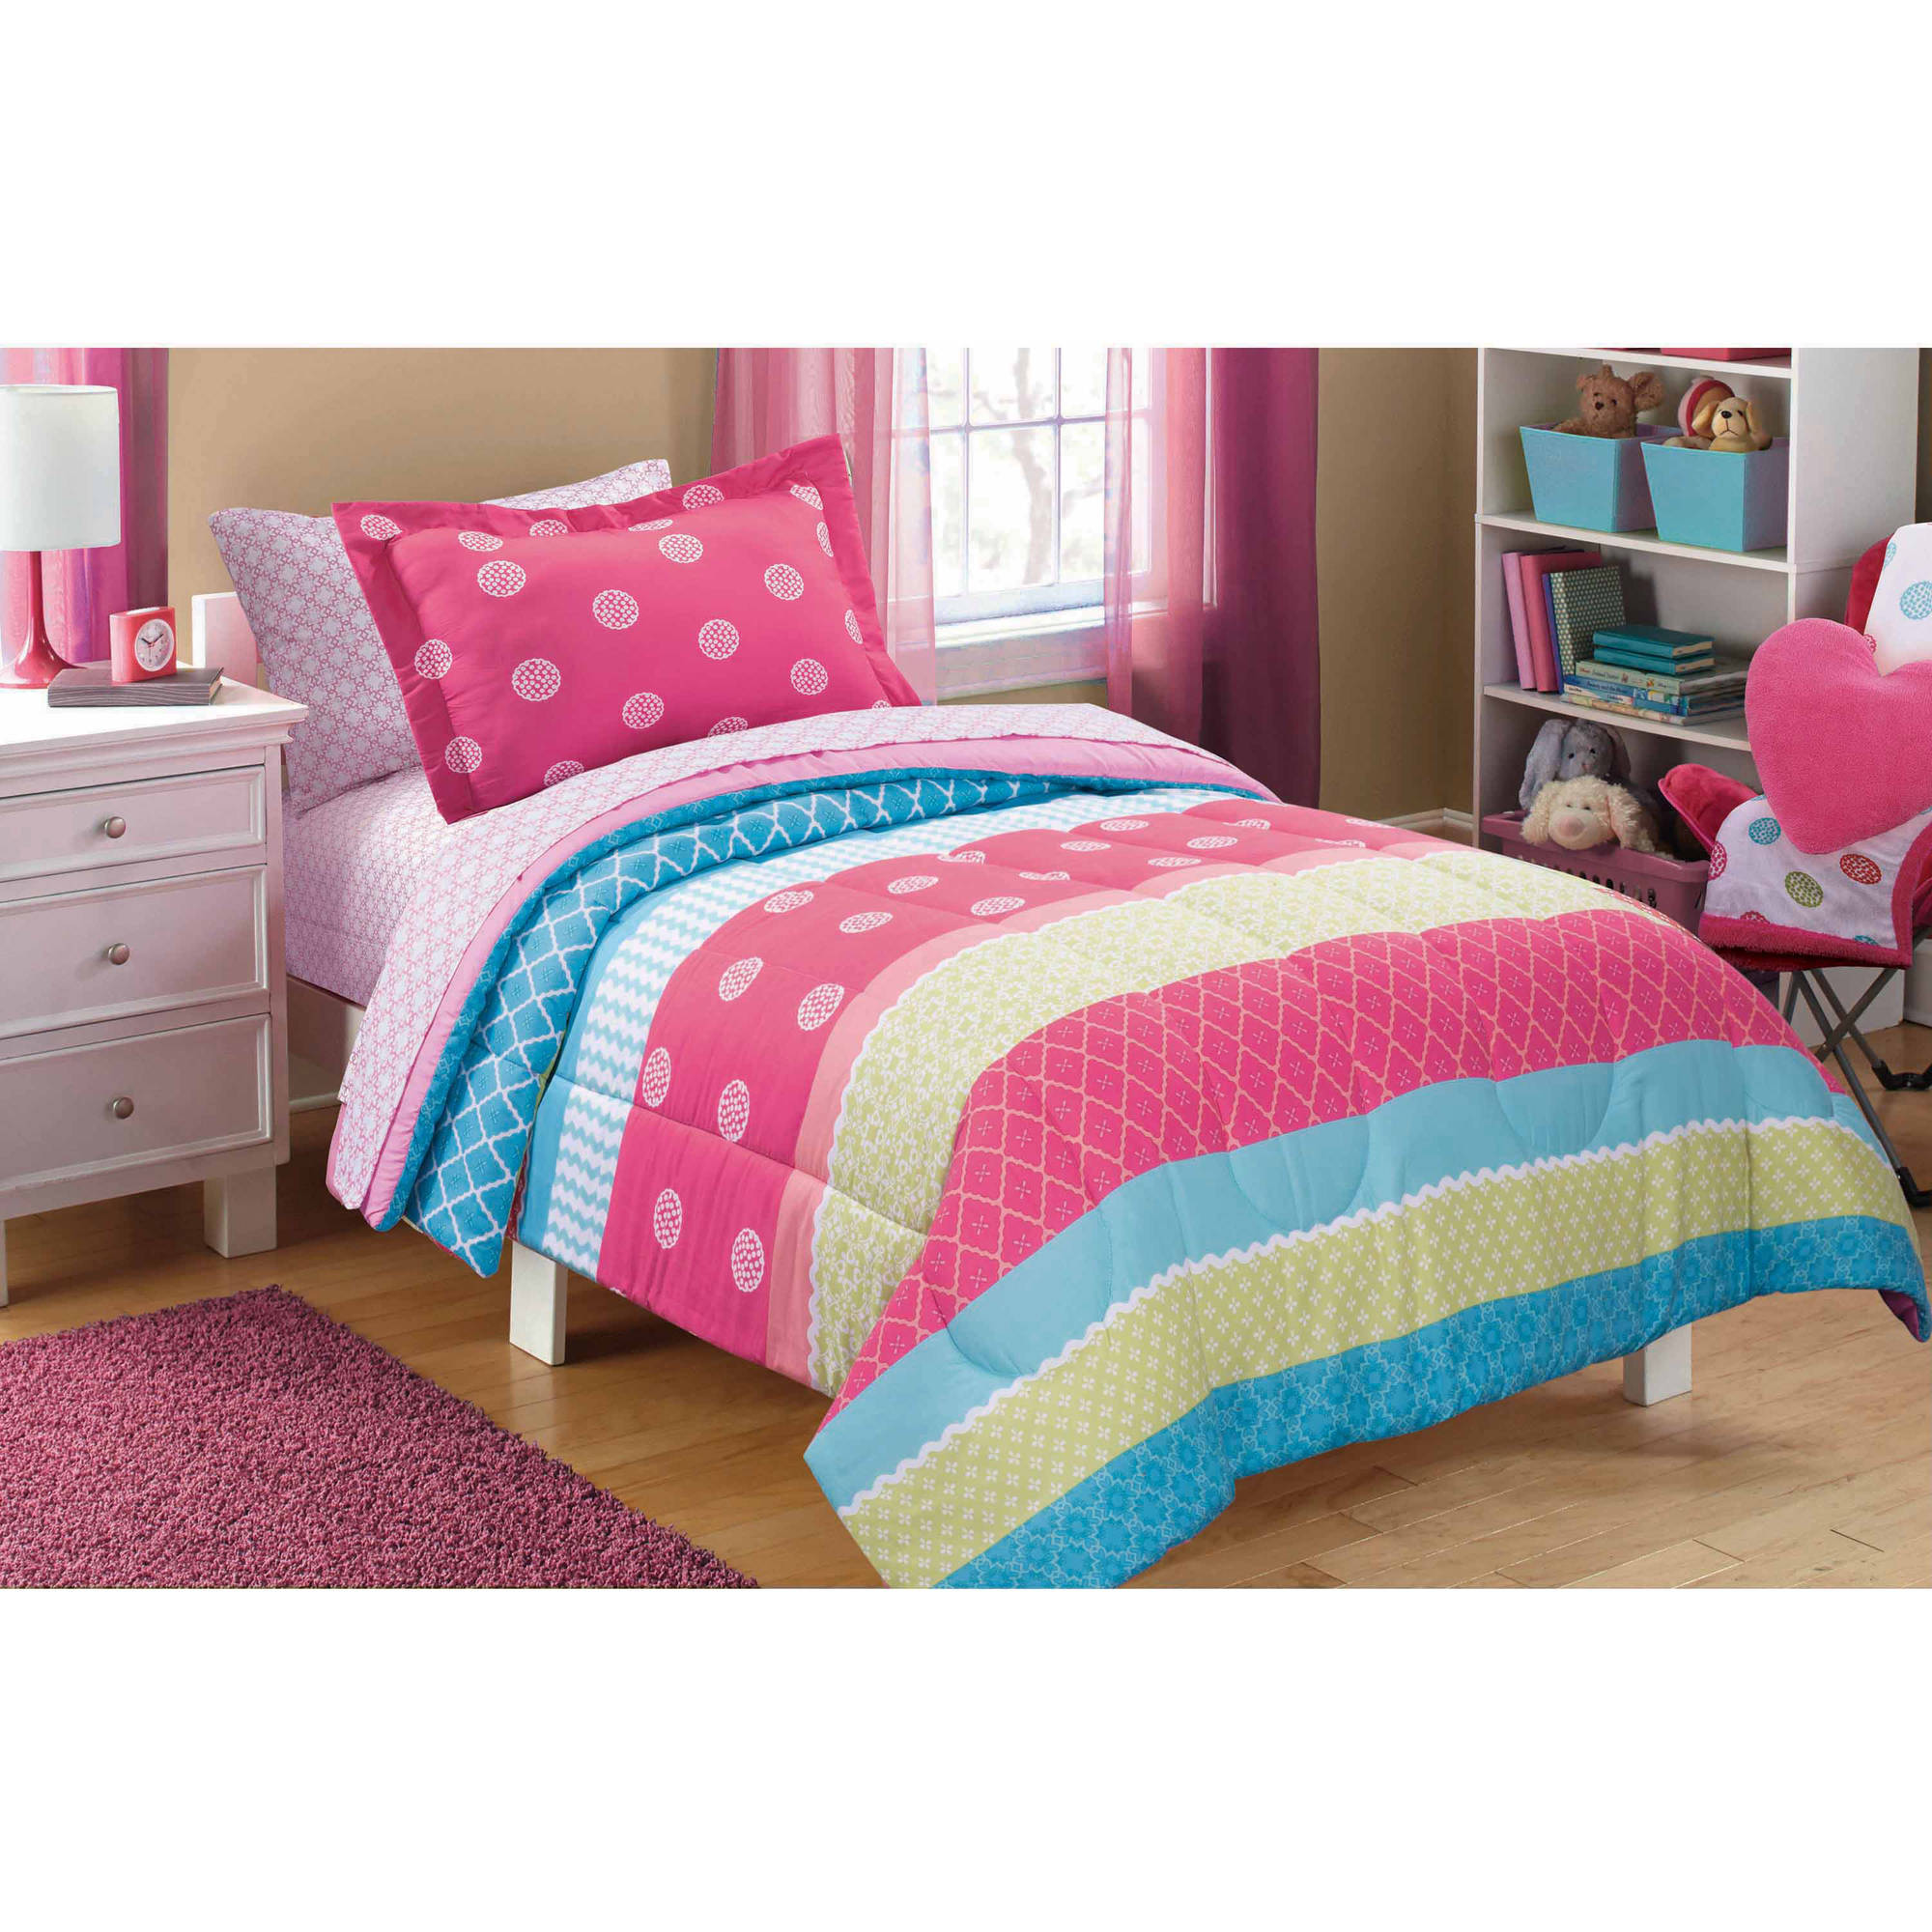 Mainstays Kids Mix It Up Bed in a Bag Bedding Set